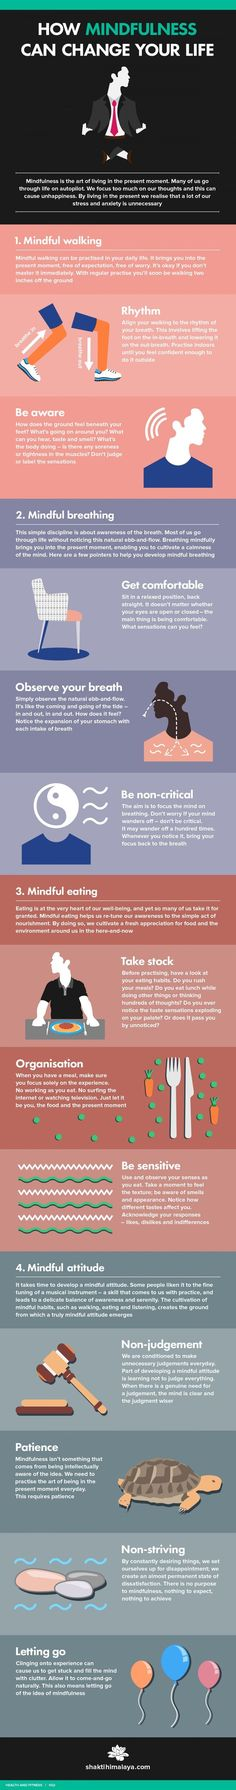 """Mindfulness is not a magic trick that all of a suddeneliminates stress and gives you the life of your dreams. But people who have integrated a mindfulness practice into their lives, repeatedly use the phrase """"life-changing"""" to describe it.Whether it's here in this Infographicor somewhere in the future, wehope the"""